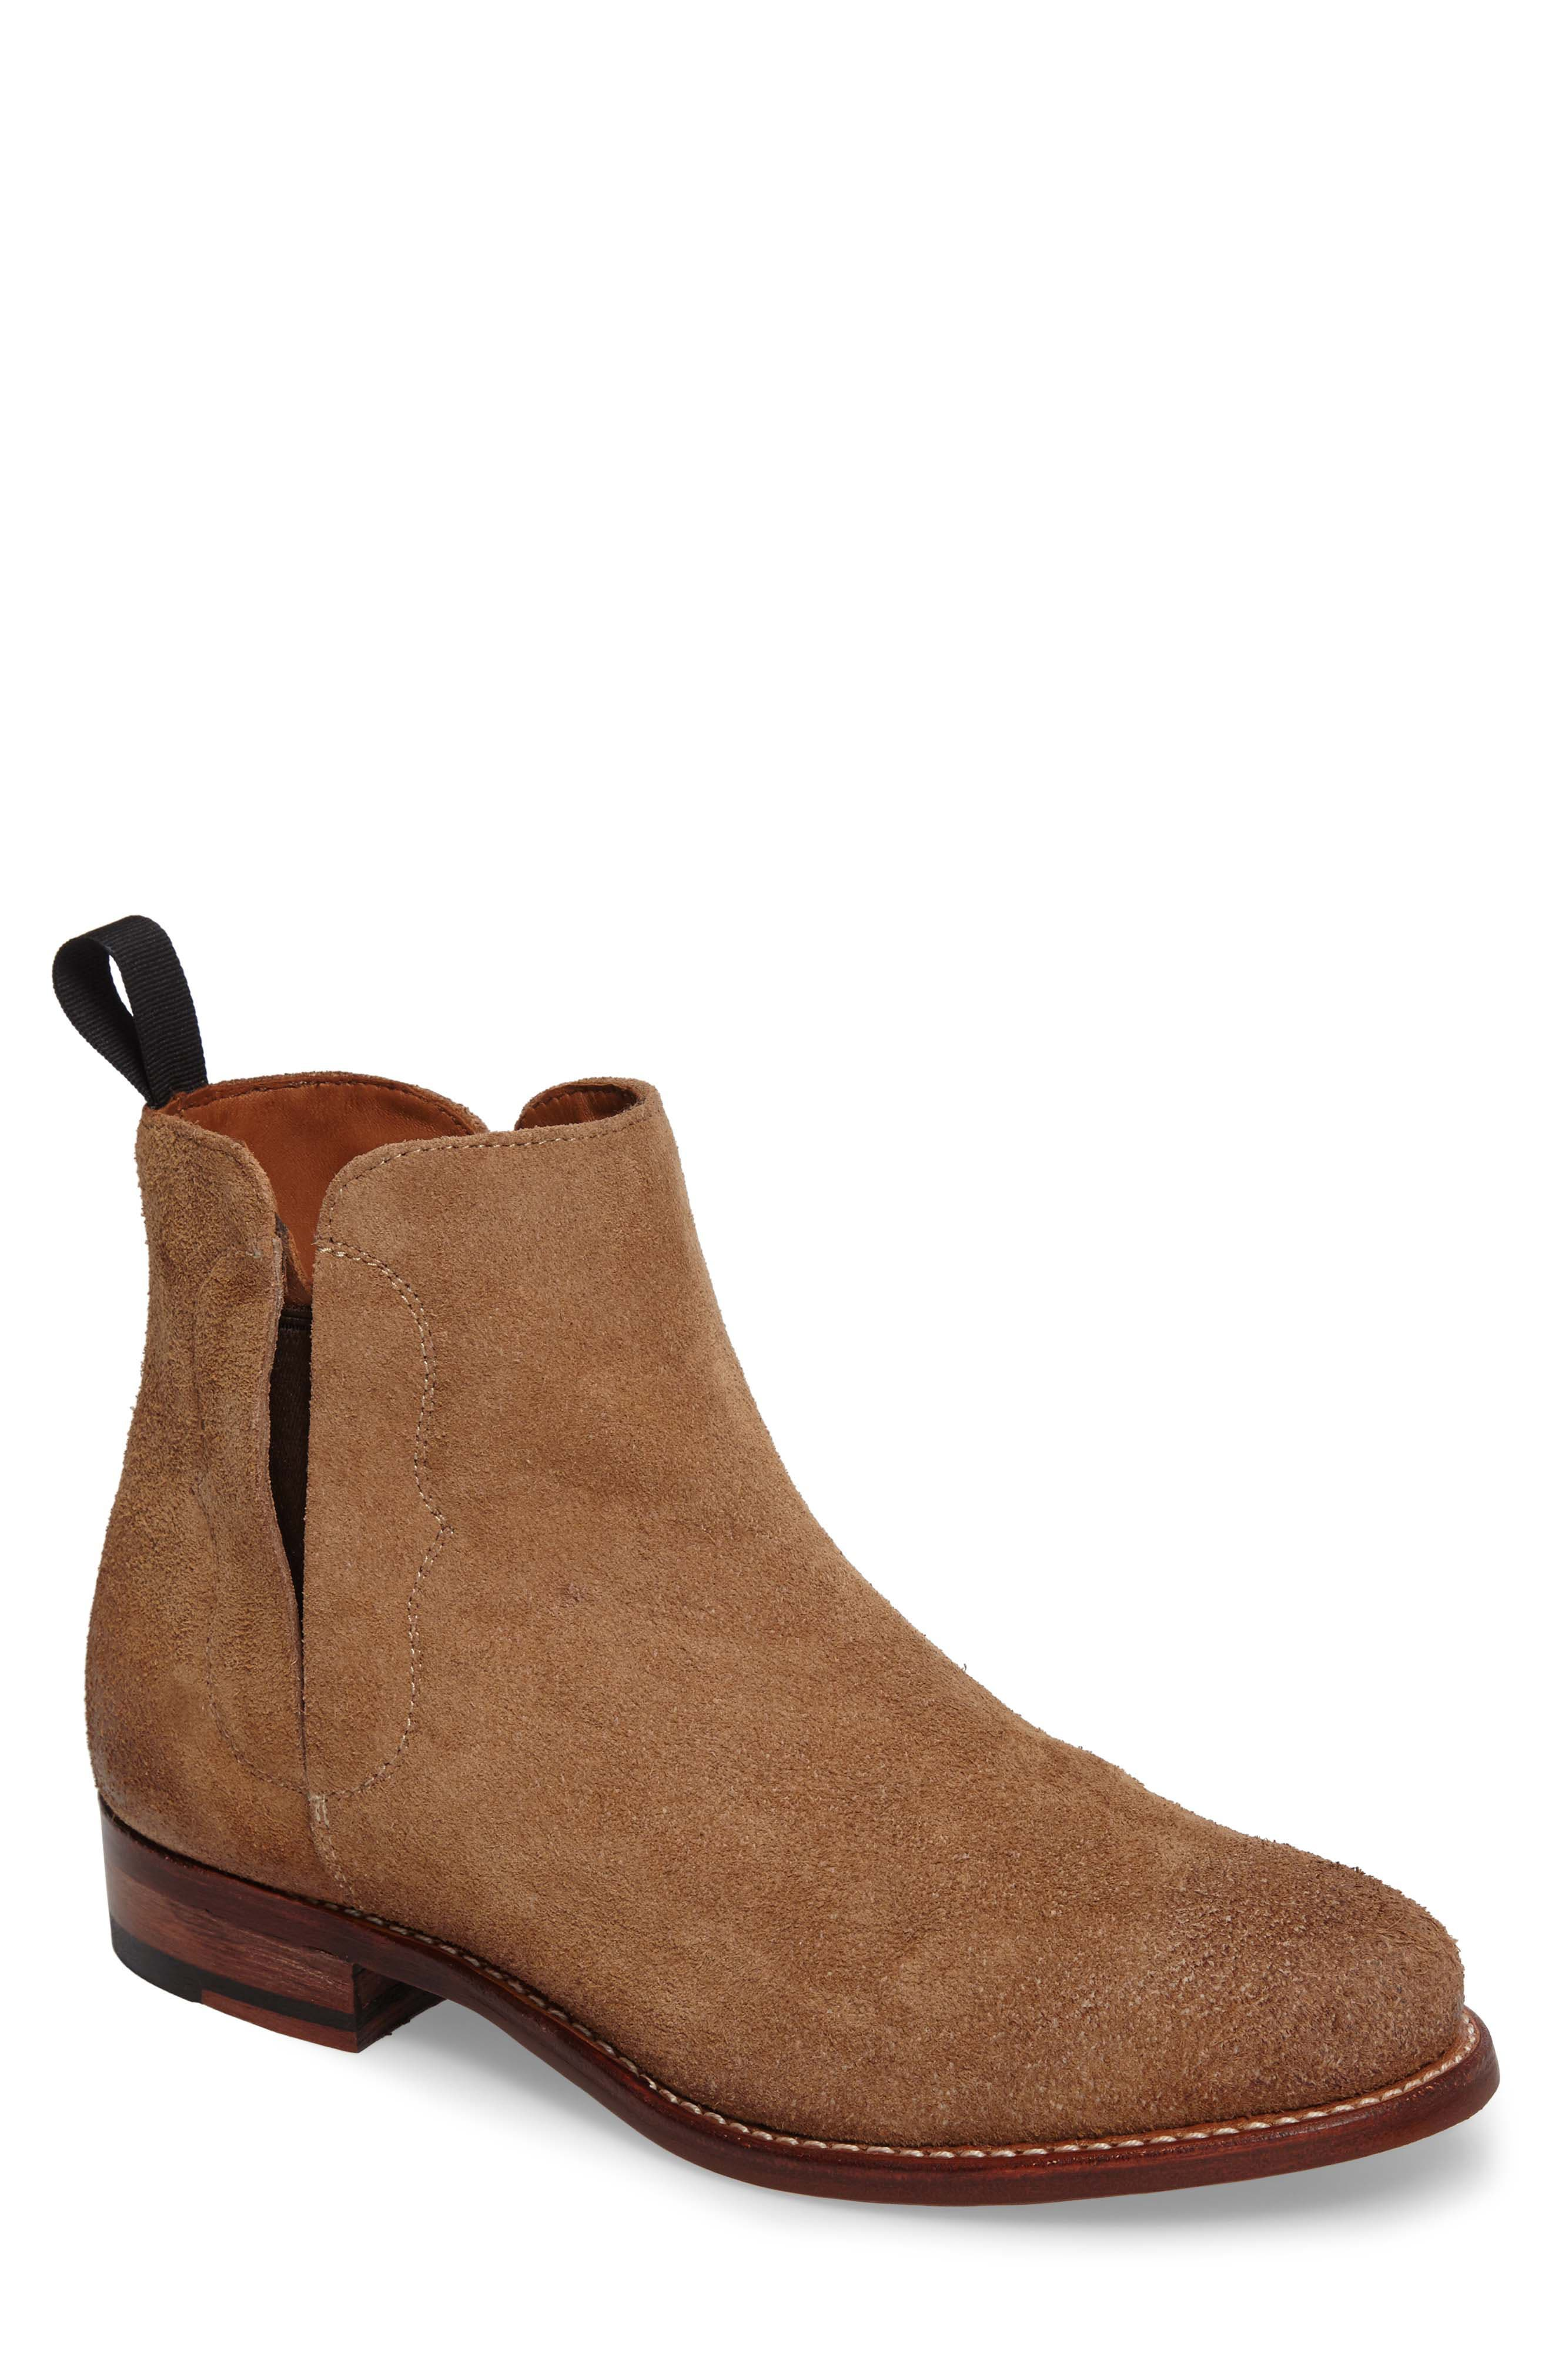 Ariat Maxwell Chelsea Boot,                             Main thumbnail 1, color,                             Amaretto Suede